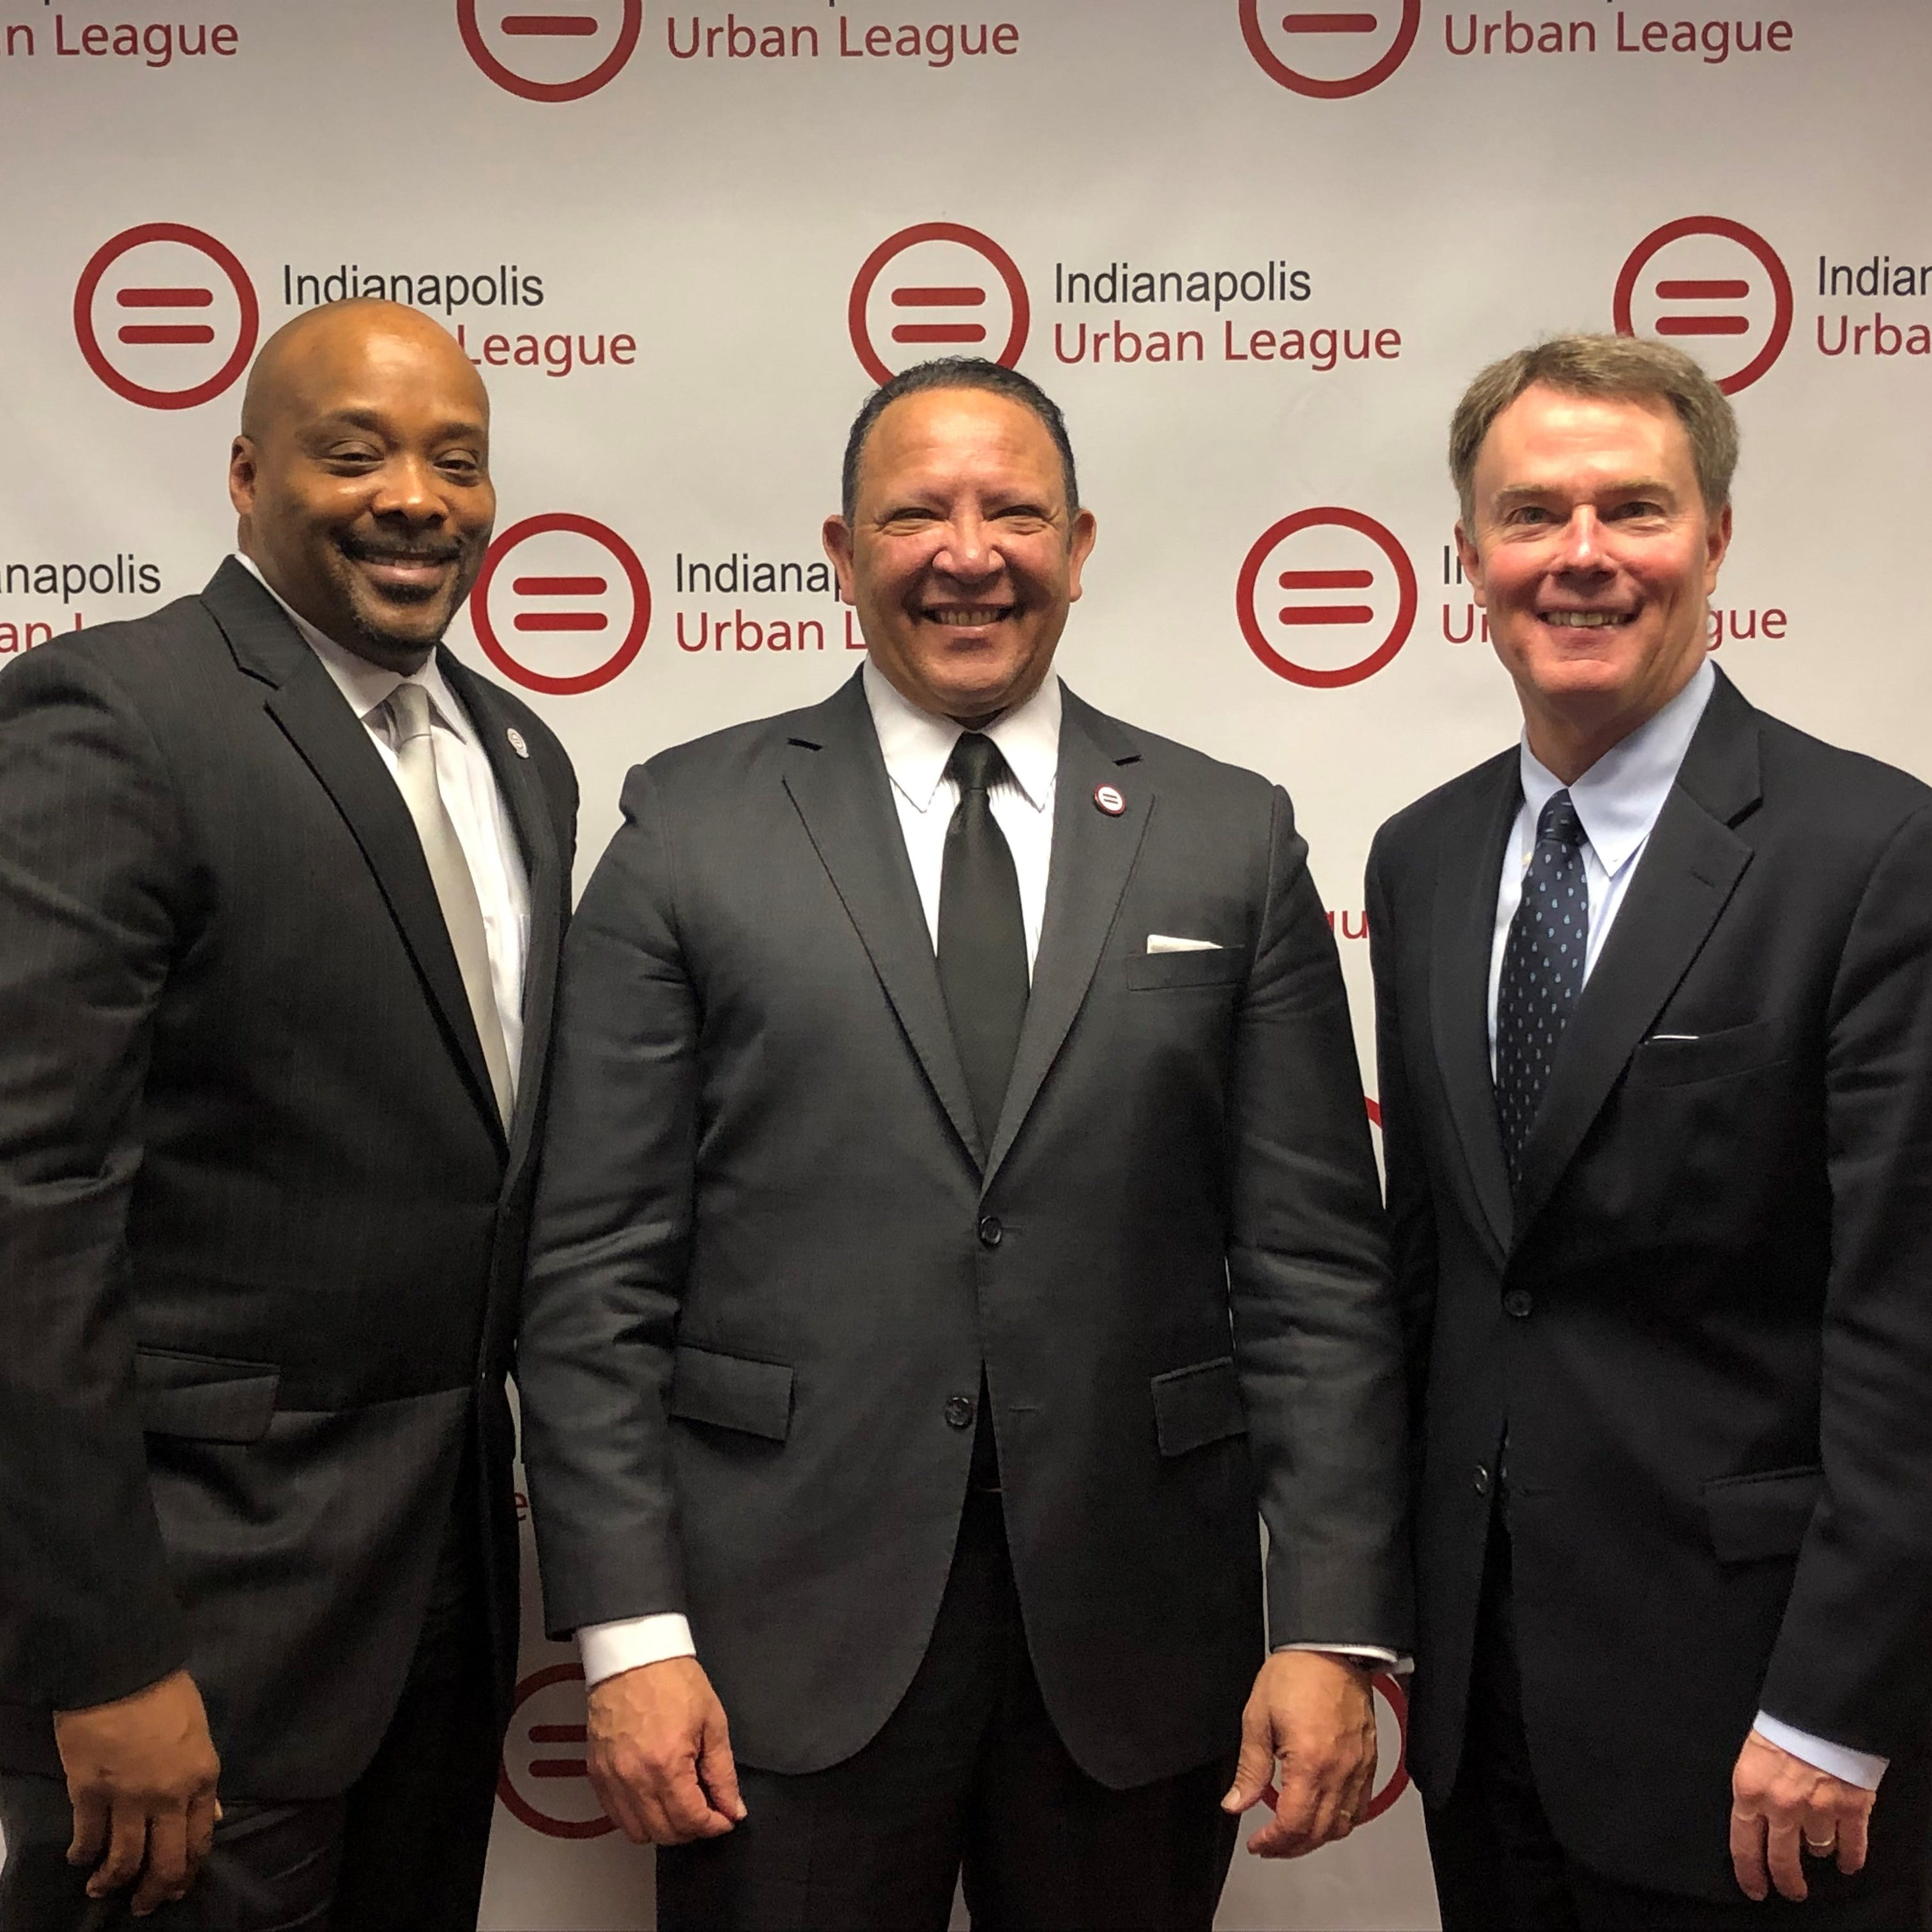 Hopes for National Urban League conference in Indy: Promote unity, economic equality